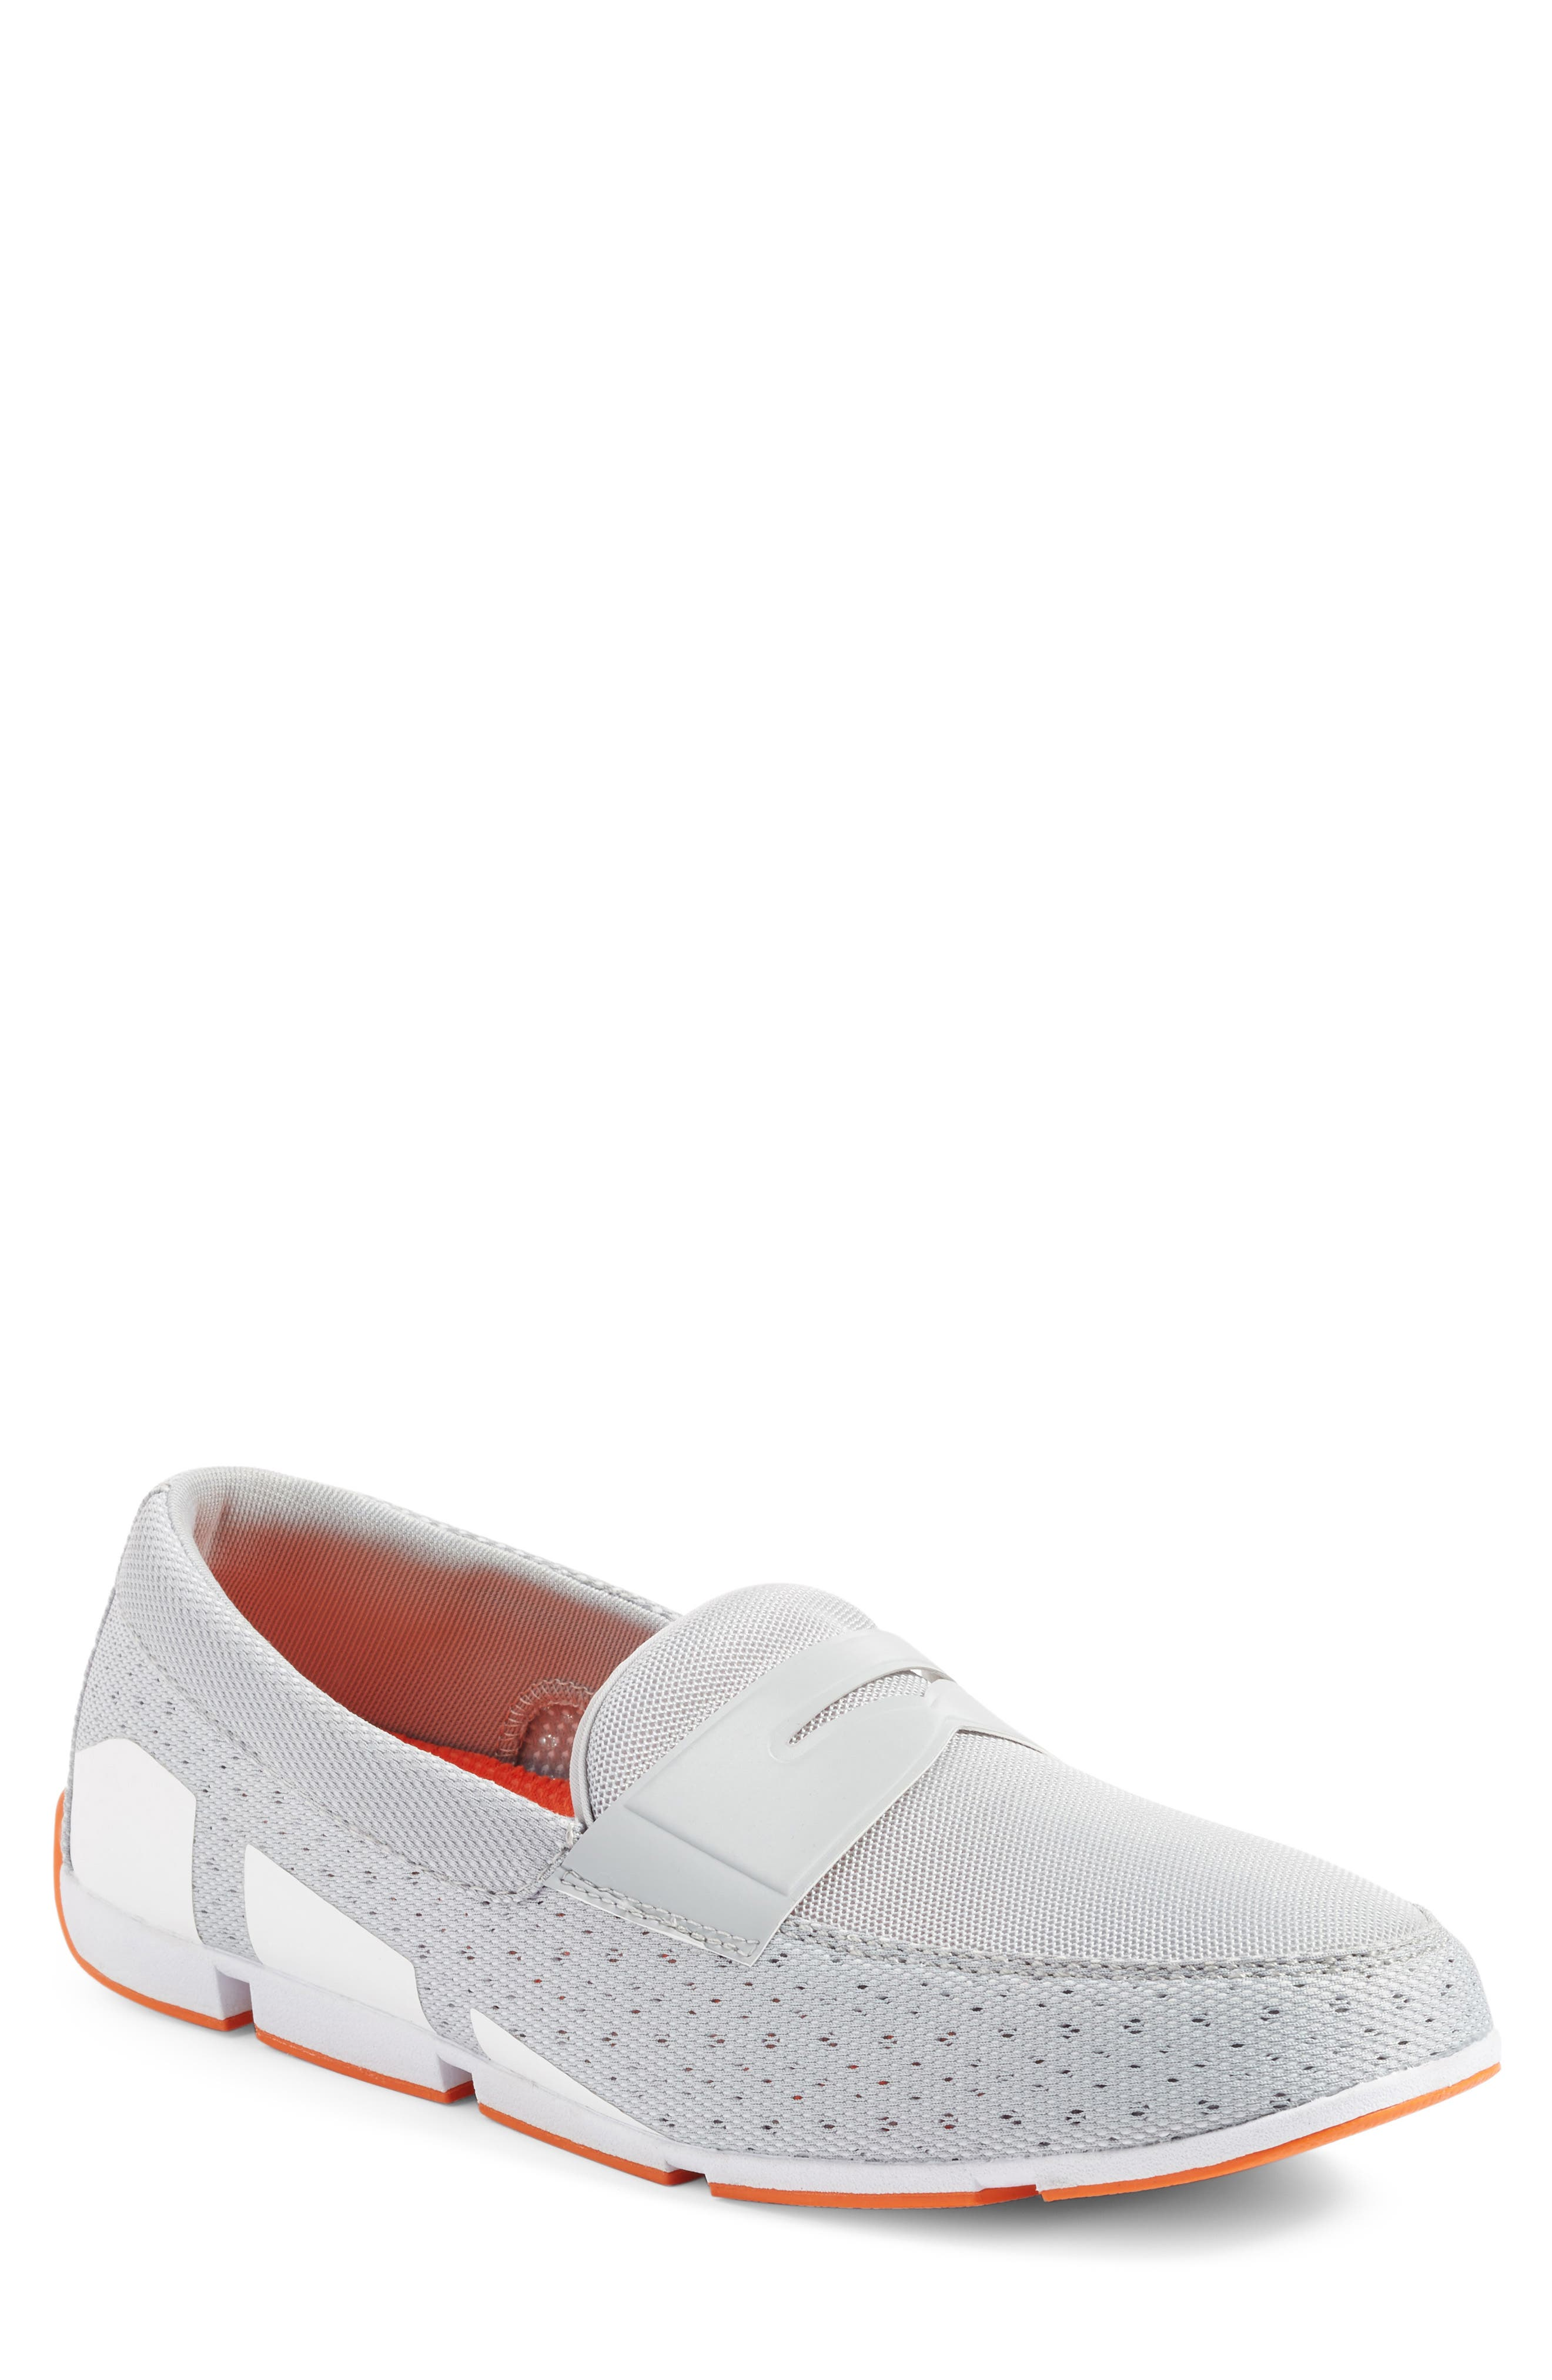 Breeze Penny Loafer,                             Alternate thumbnail 7, color,